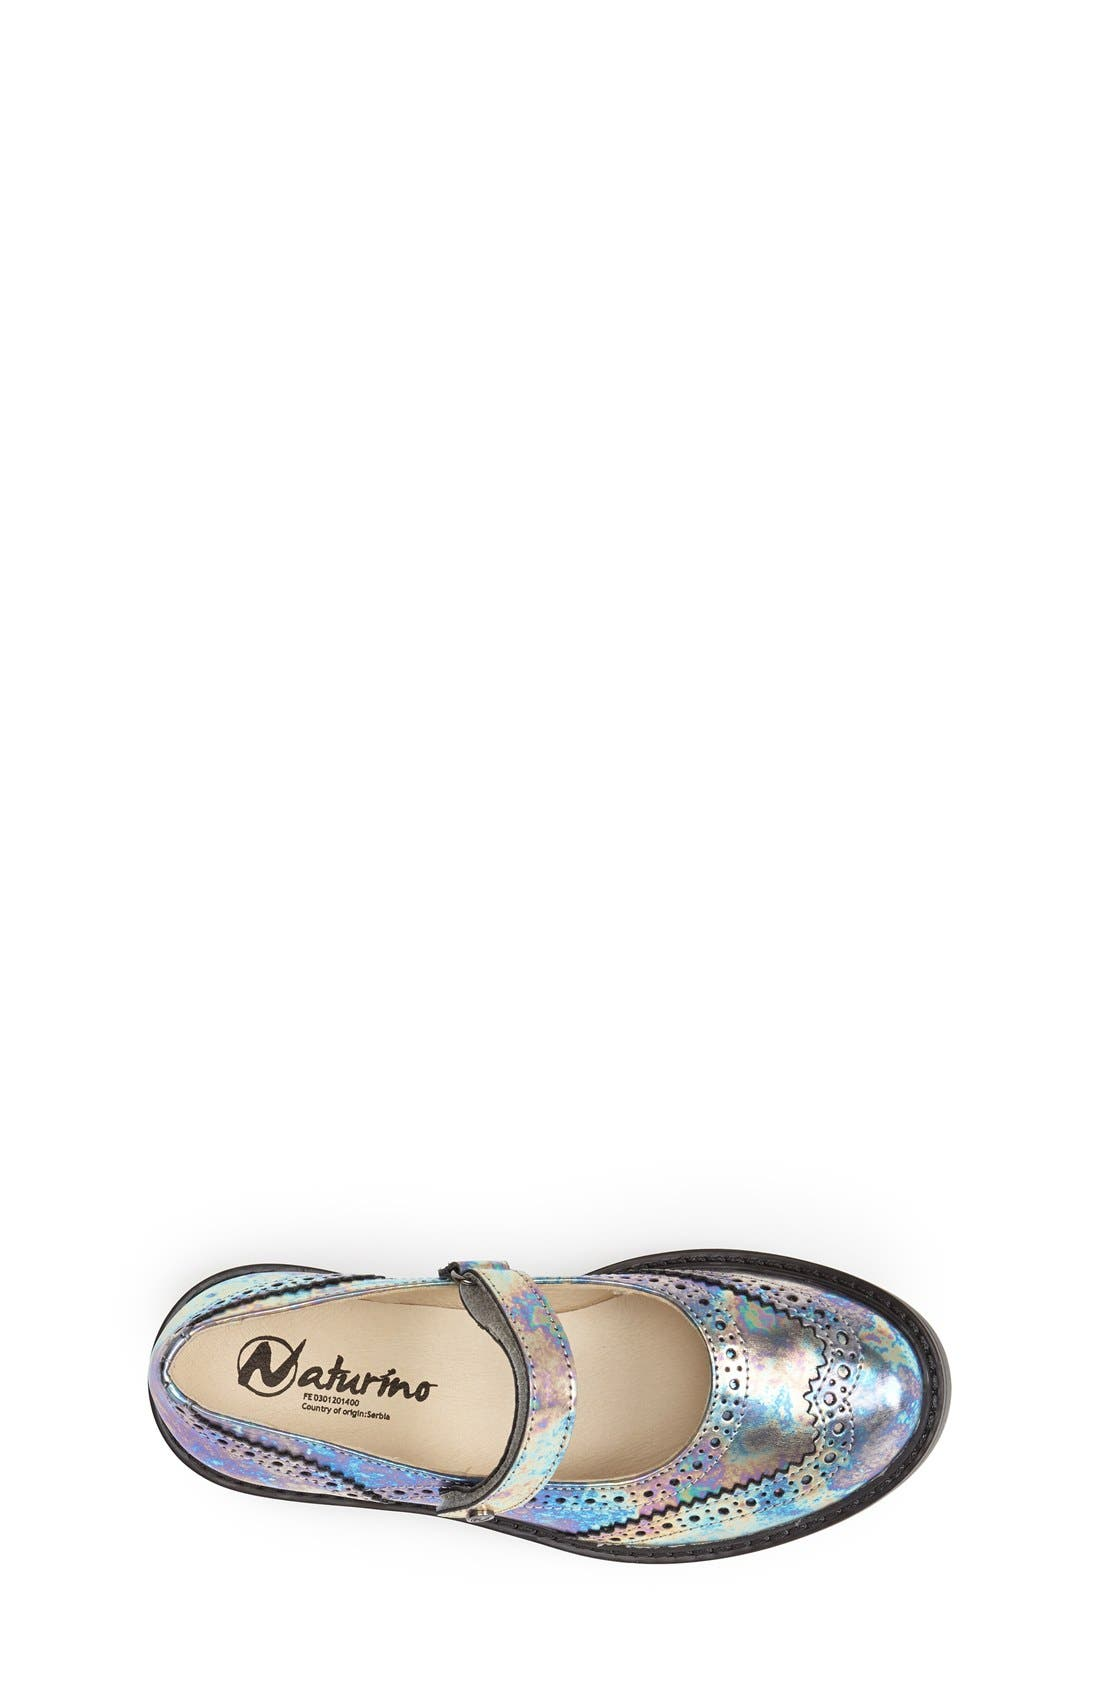 '4833' Leather Mary Jane Flat,                             Alternate thumbnail 4, color,                             040